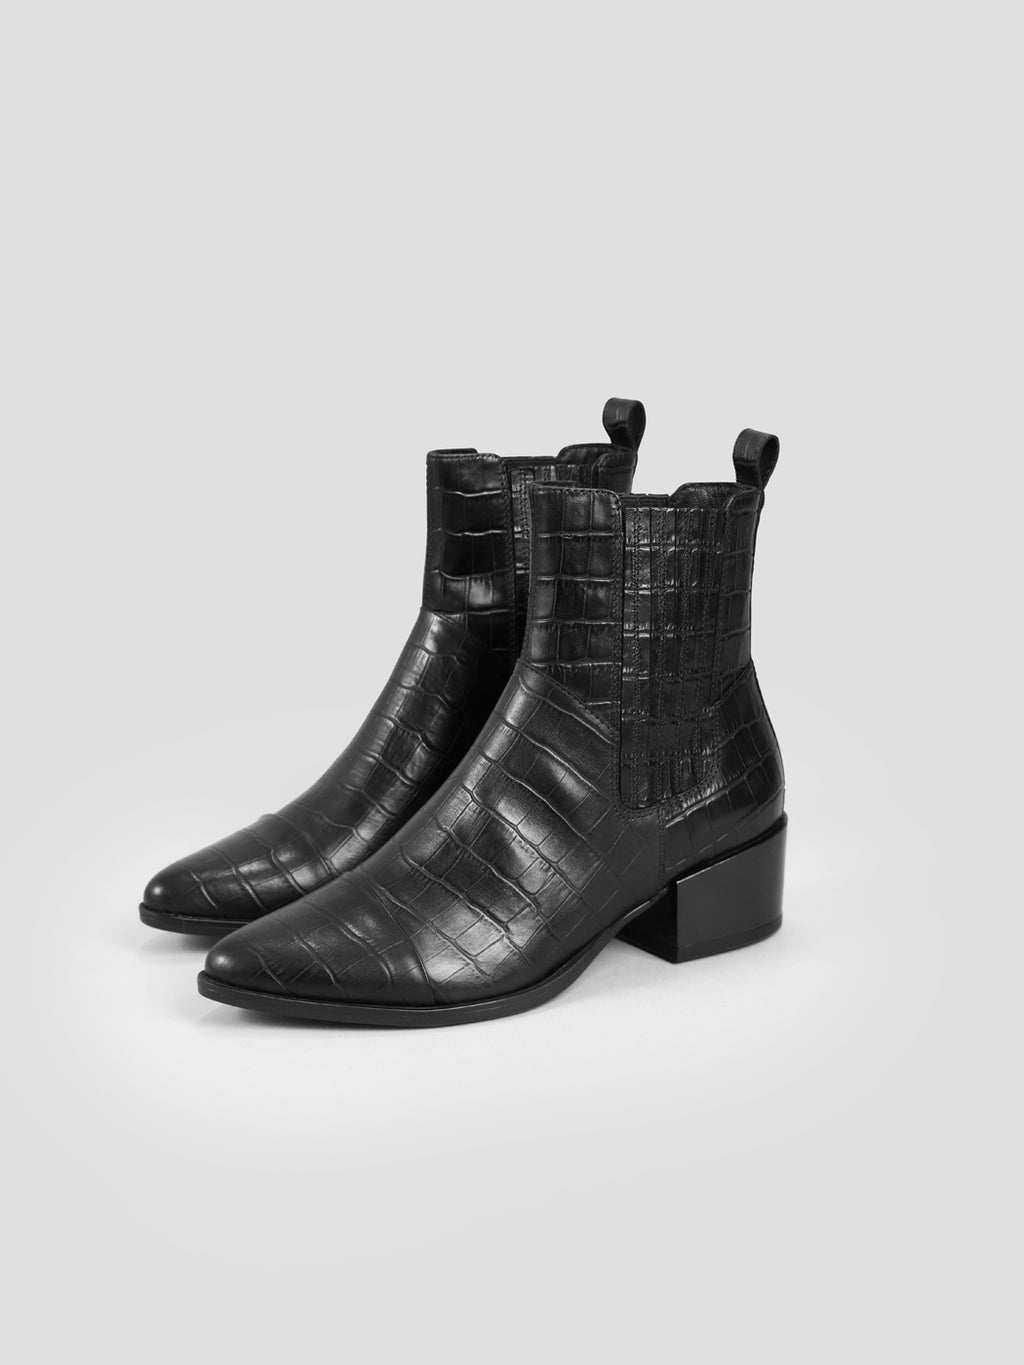 Marja croc-embossed black leather chelsea boot side view